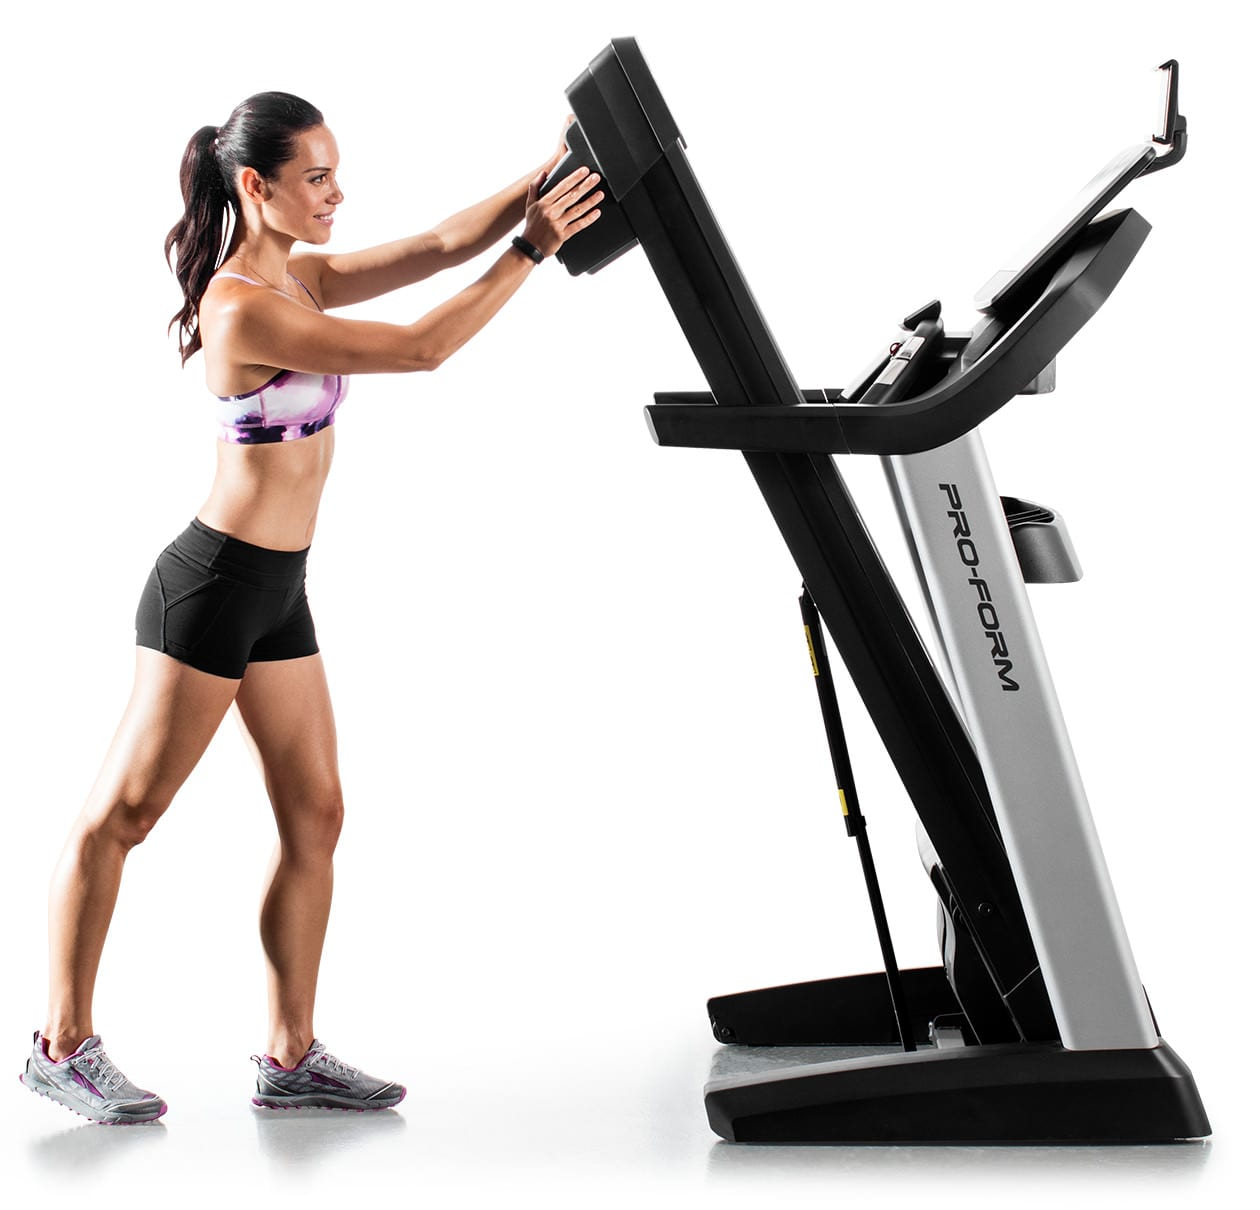 Workout Warehouse Treadmills ProForm Pro 2000  gallery image 6